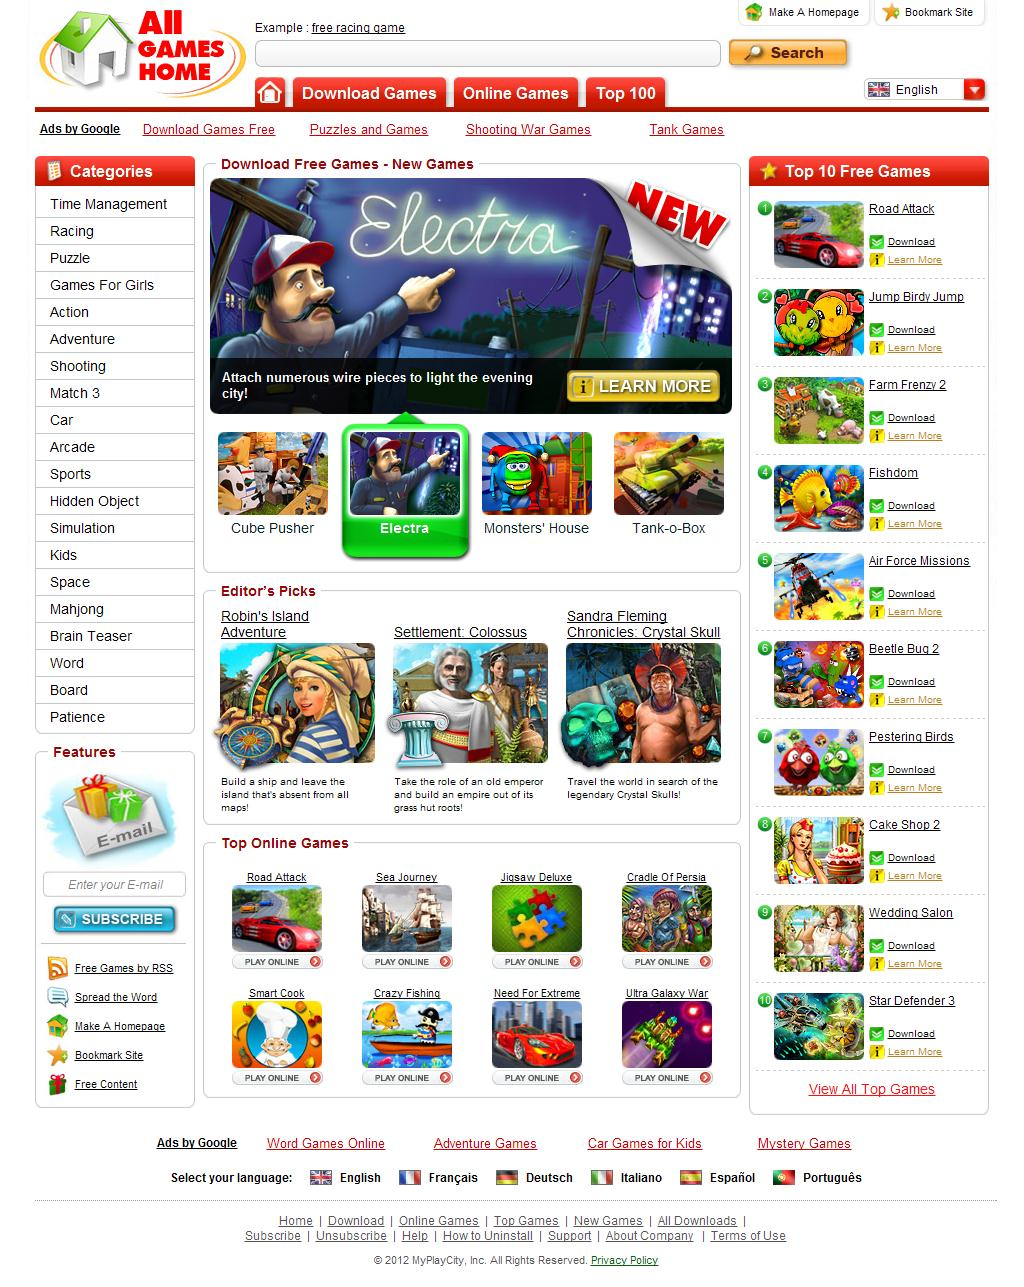 All Games Home - Download Free Games - Play Free Games!